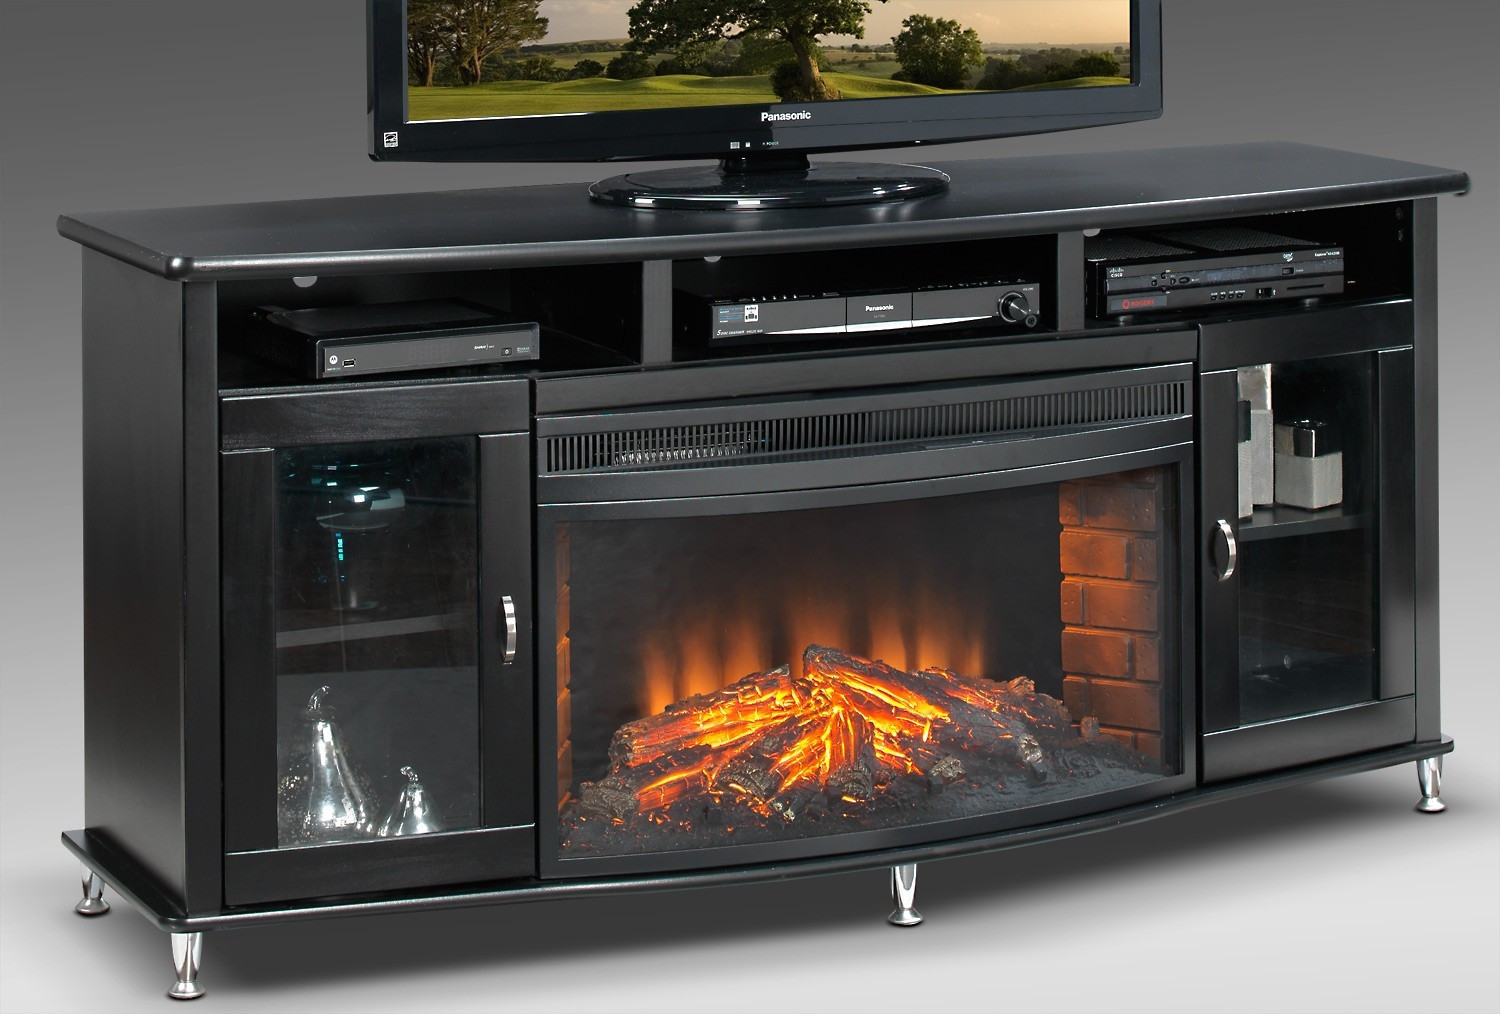 Best ideas about Electric Fireplace Tv Stands Costco . Save or Pin 15 Electric Fireplace Tv Stand Costco pilation Now.